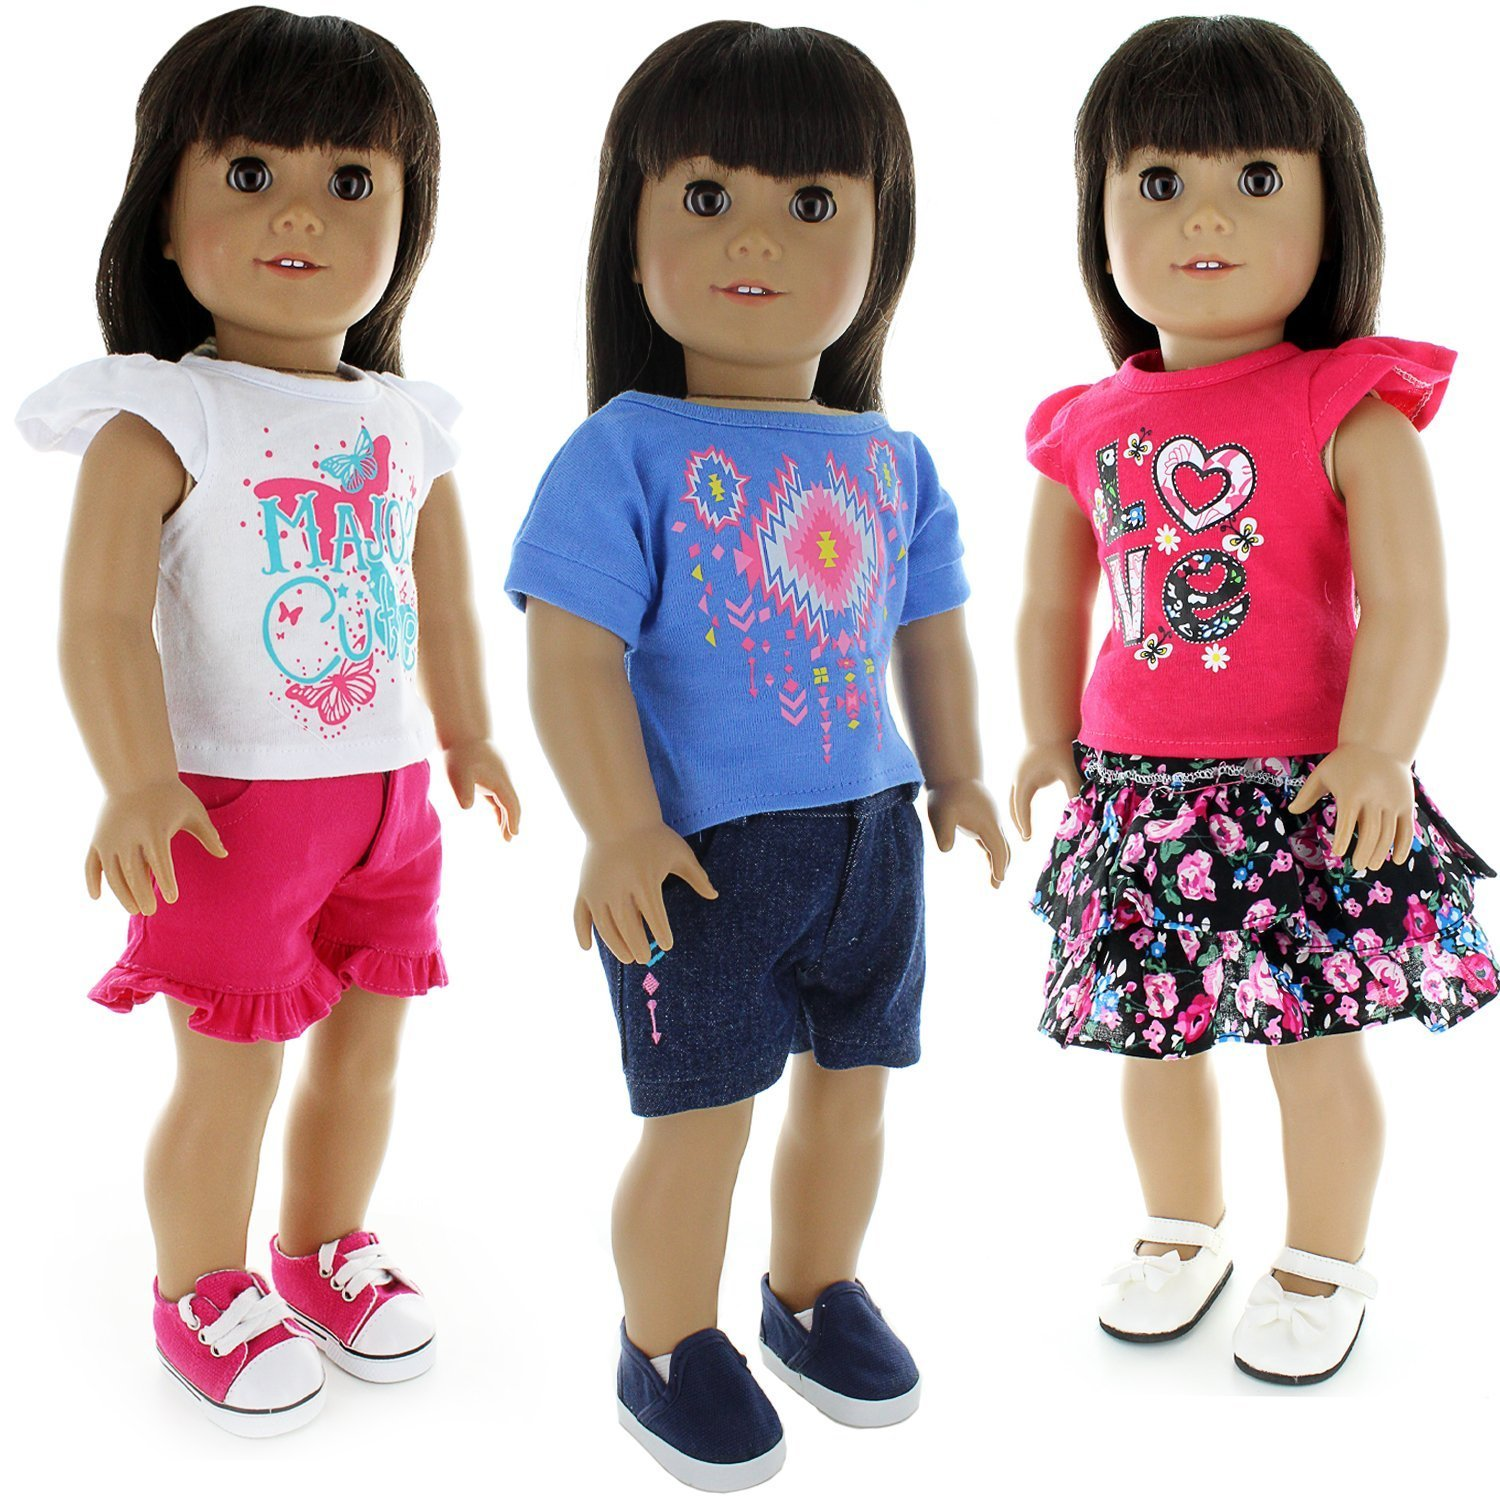 Doll Clothes - 6 pieces Mix and Match Clothes Outfit Fits American Girl Doll, My Life Doll, Our Generation and other 18 inch Dolls Pink Butterfly Closet